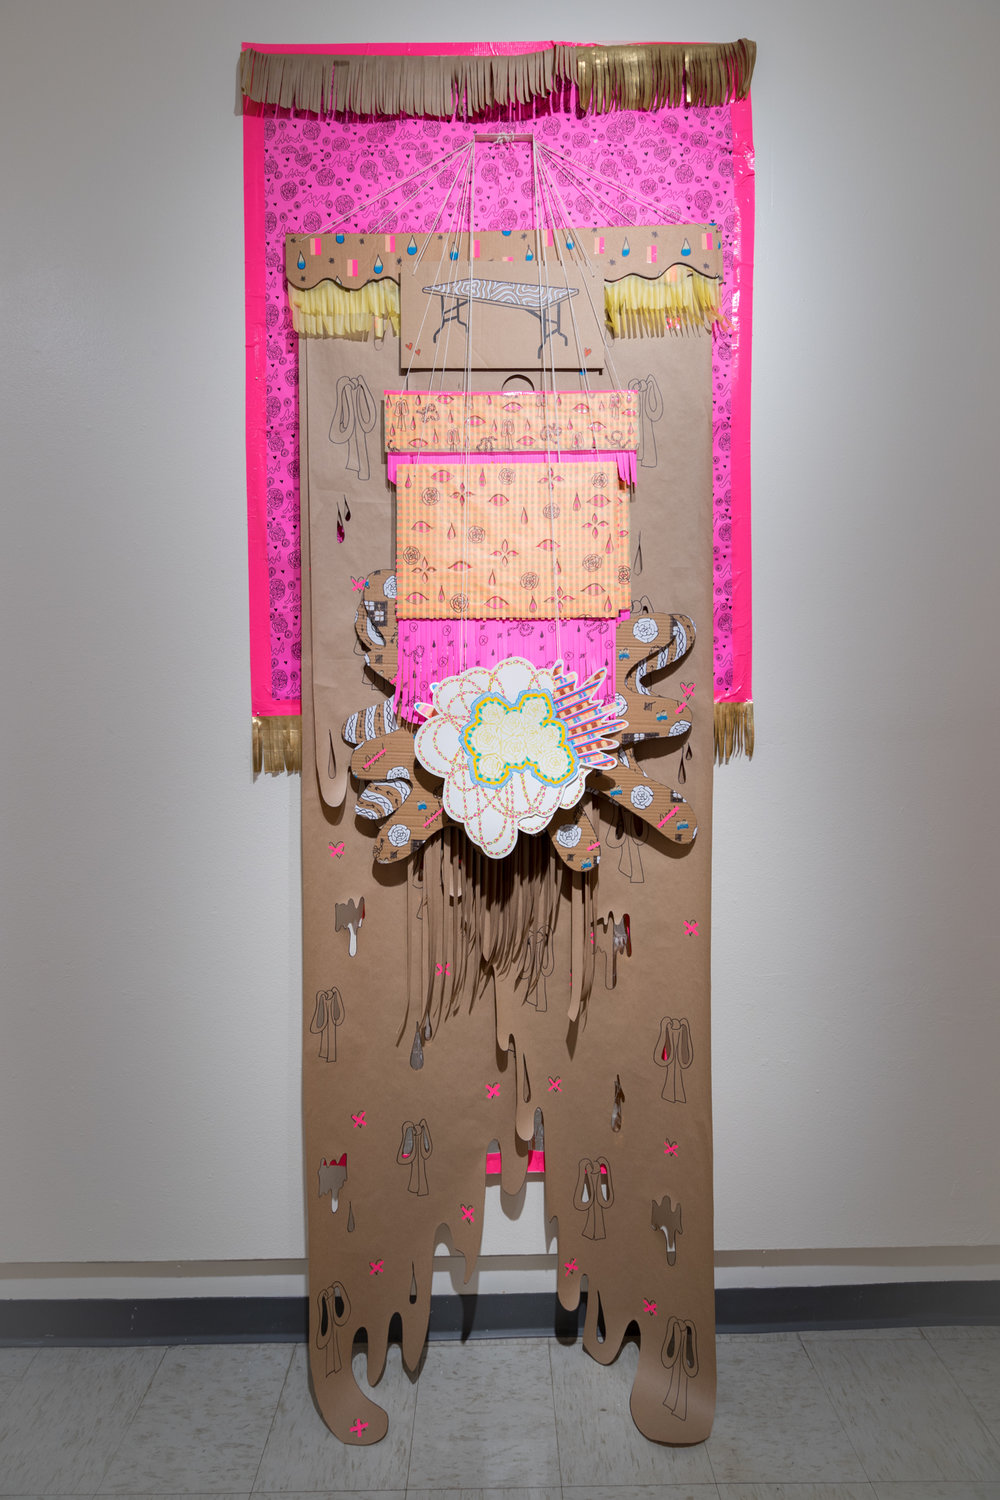 Clothes Rack (Failed Installation), 2017 craft paper, tape, marker, paint, watercolor, tracing paper, cardboard, photocopies, 10x4x1 ft